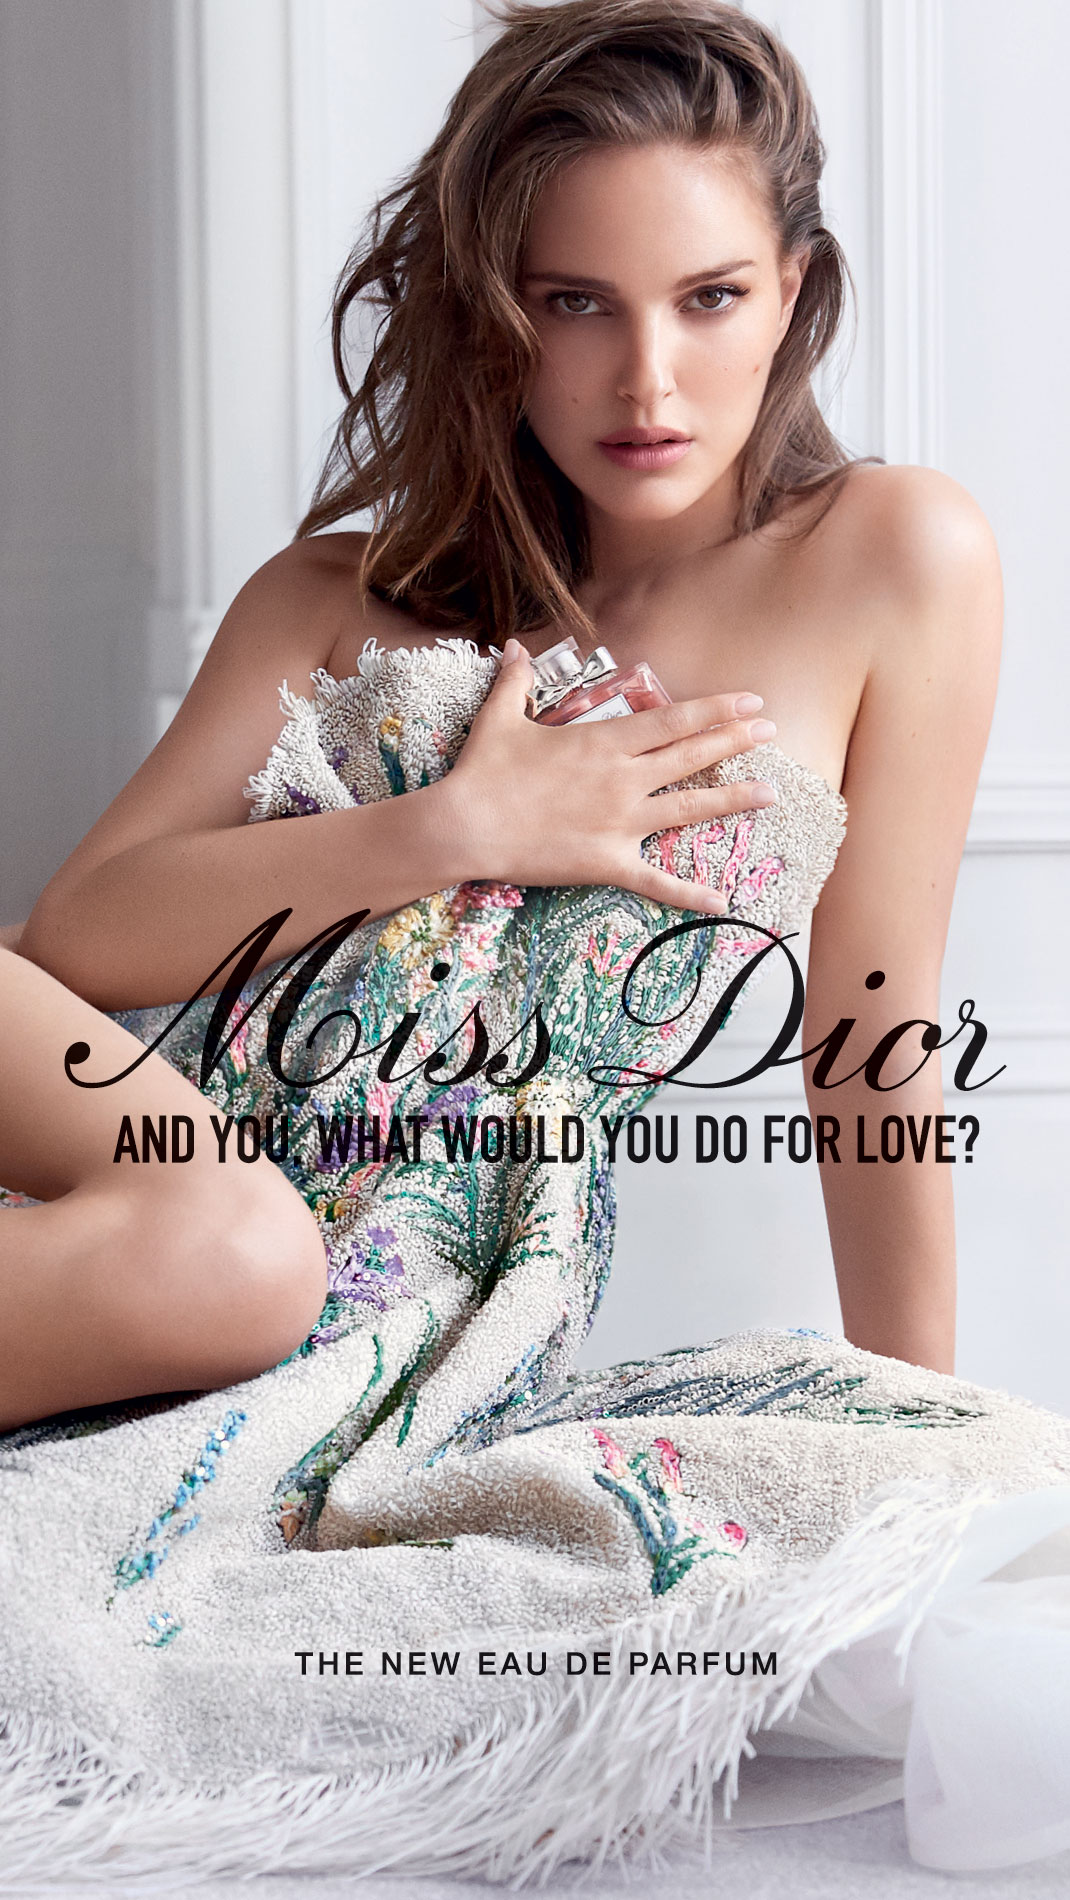 miss dior eau de parfum 2017 christian dior parfum een nieuwe geur voor dames 2017. Black Bedroom Furniture Sets. Home Design Ideas